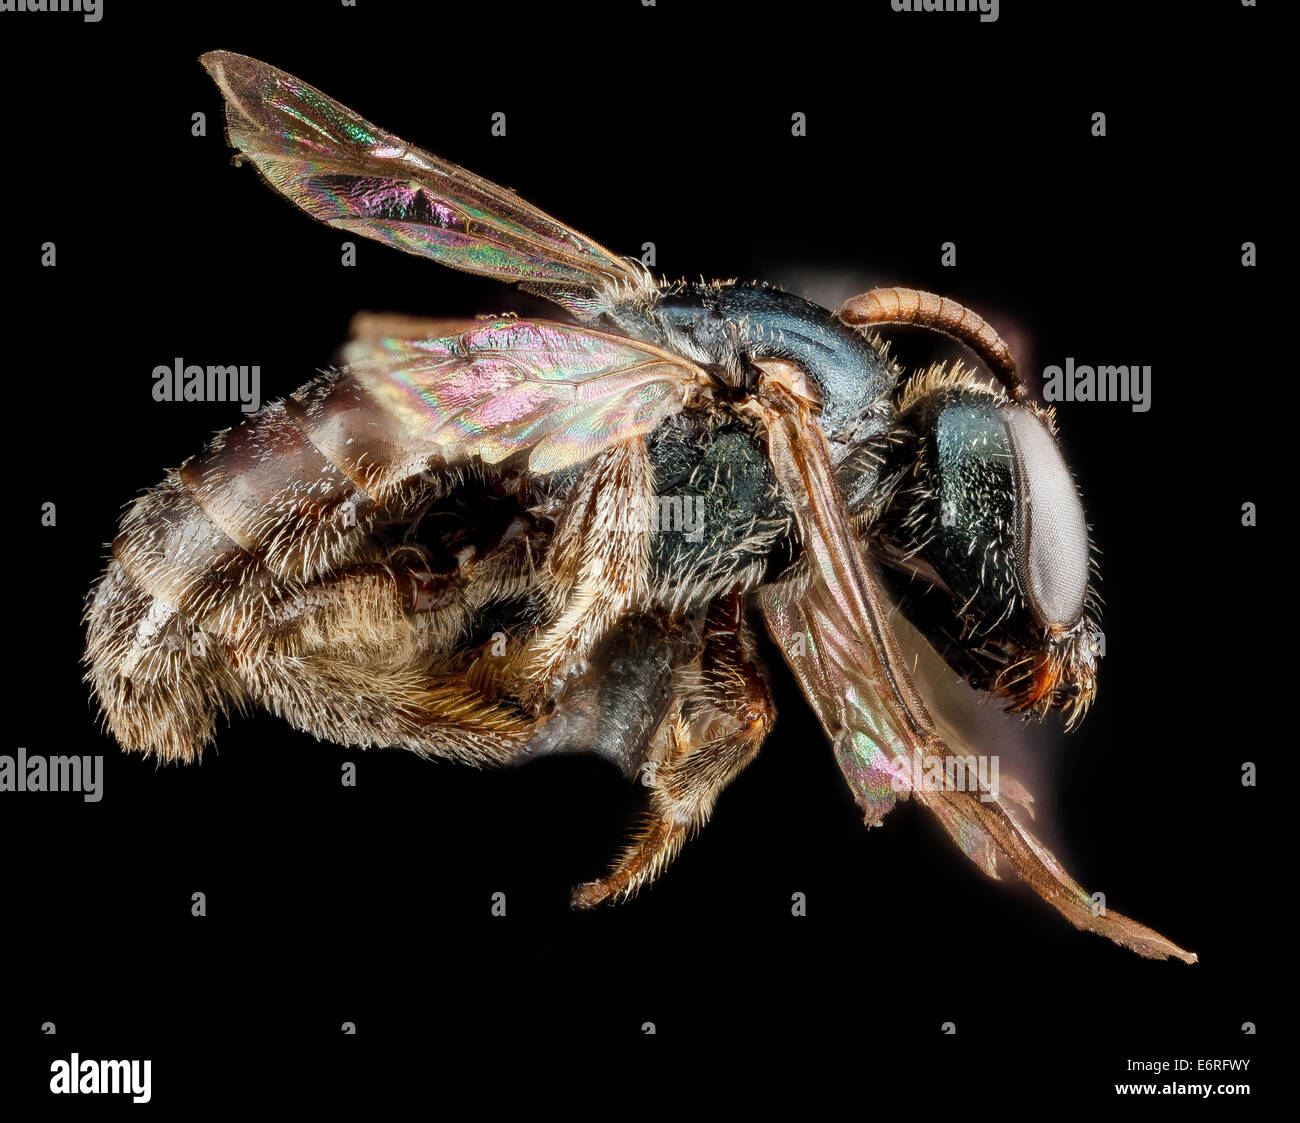 Lasioglossum halophitum, F, side, Florida, St Johns County_2013-02-22-190456 ZS PMax_10683143214_o Captured as part - Stock Image